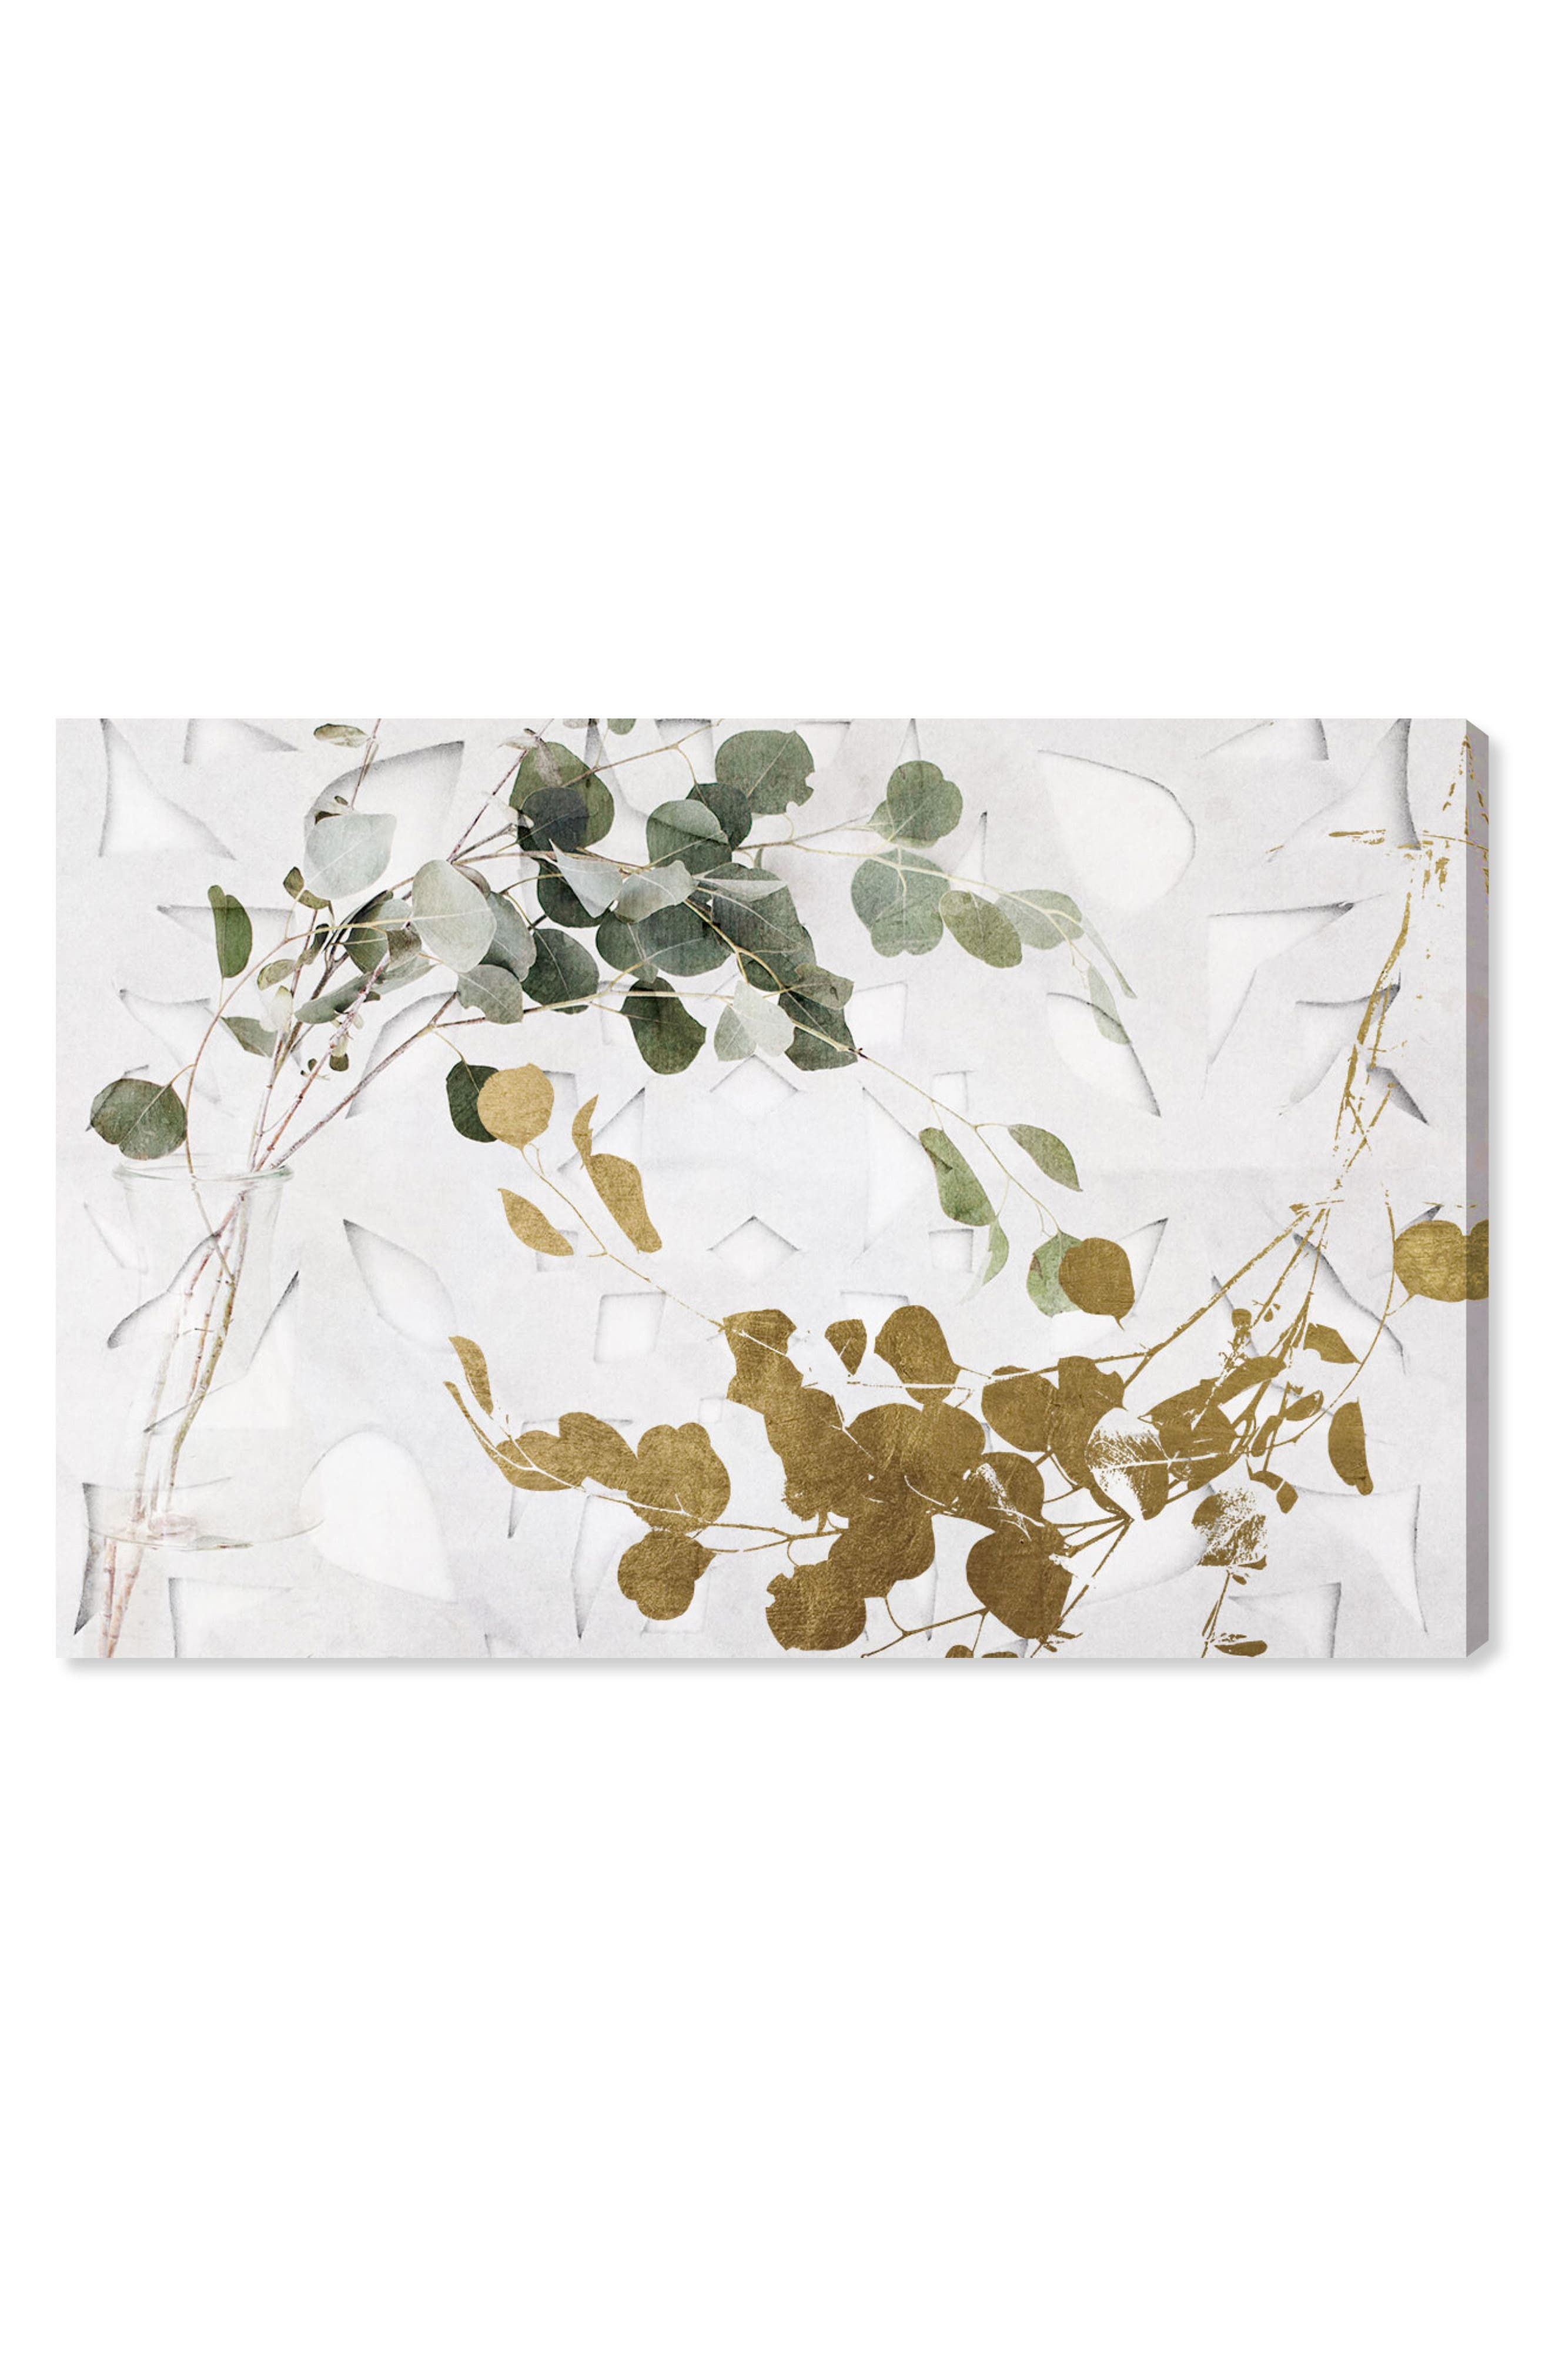 Oliver Gal Golden Leaves Canvas Wall Art